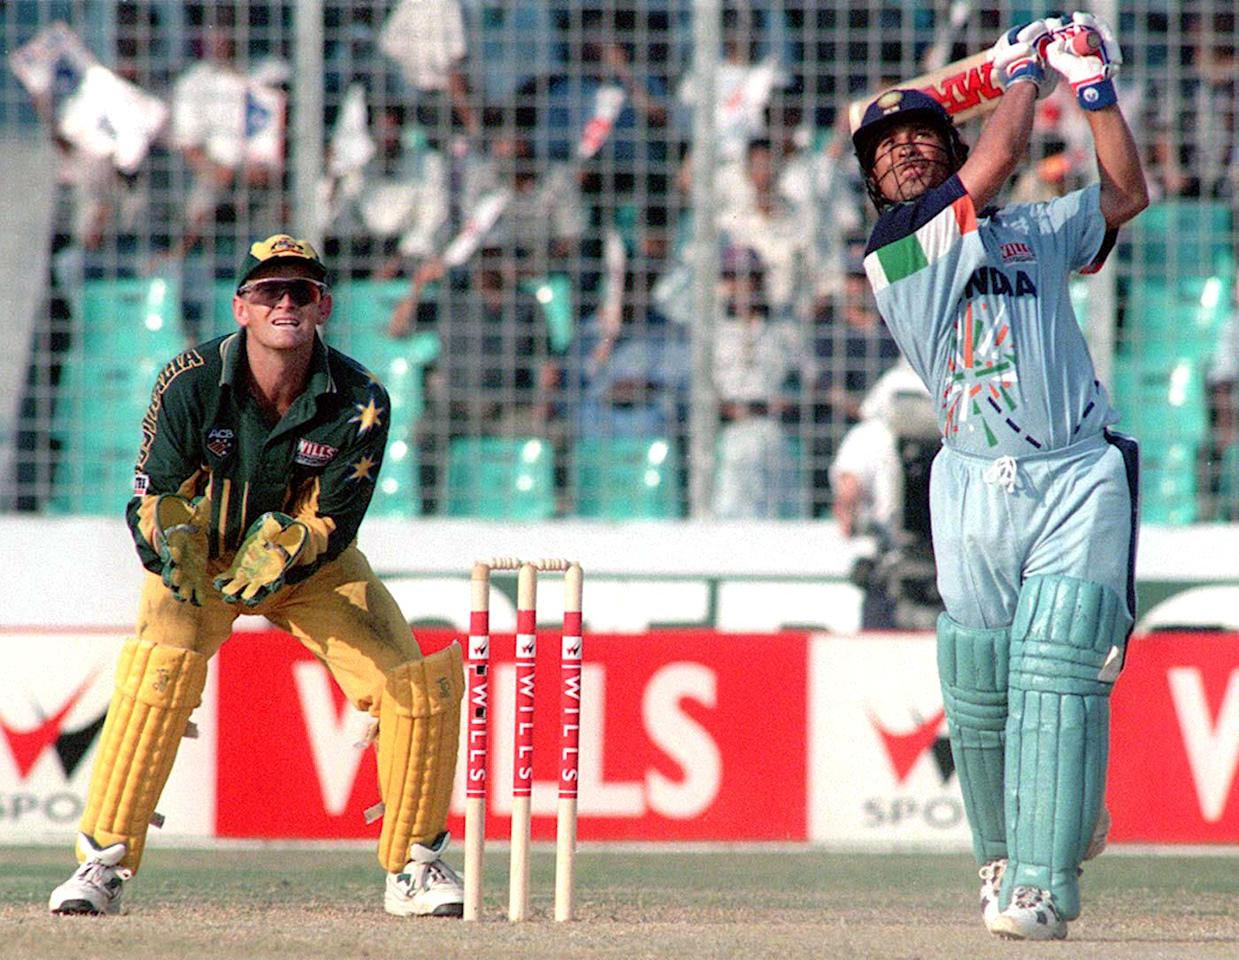 DHAKA, BANGLADESH - OCTOBER 29:  Australian wicket-keeper Adam Gilchrist (L) watches as Indian batsman Sachin Tendulkar lofts a six during his innings of 141 off 127 balls in the mini World Cup quarter-final at Dhaka's National stadium Oct 28. India made 307-8 after being sent to bat. AFP PHOTO AFP PHOTO  (Photo credit should read MUFTY MUNIR/AFP/Getty Images)